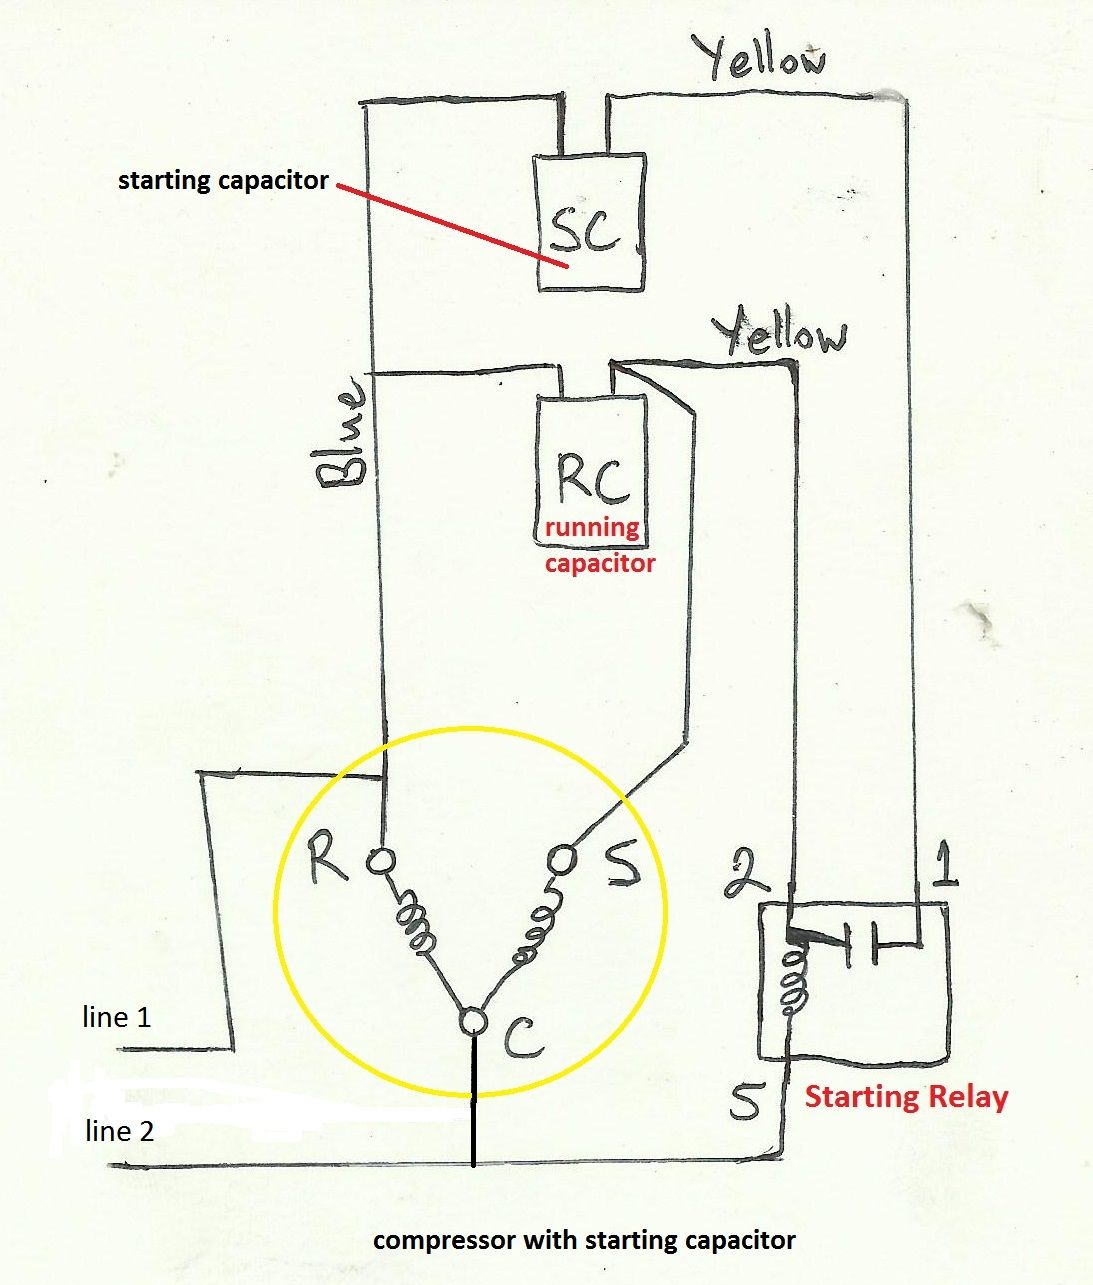 Compressor Wiring Schematics Trusted Diagrams 220v Diagram Air Capacitor Before You Call A Ac Repair Rh Pinterest Com 220 Volt 1 Phase